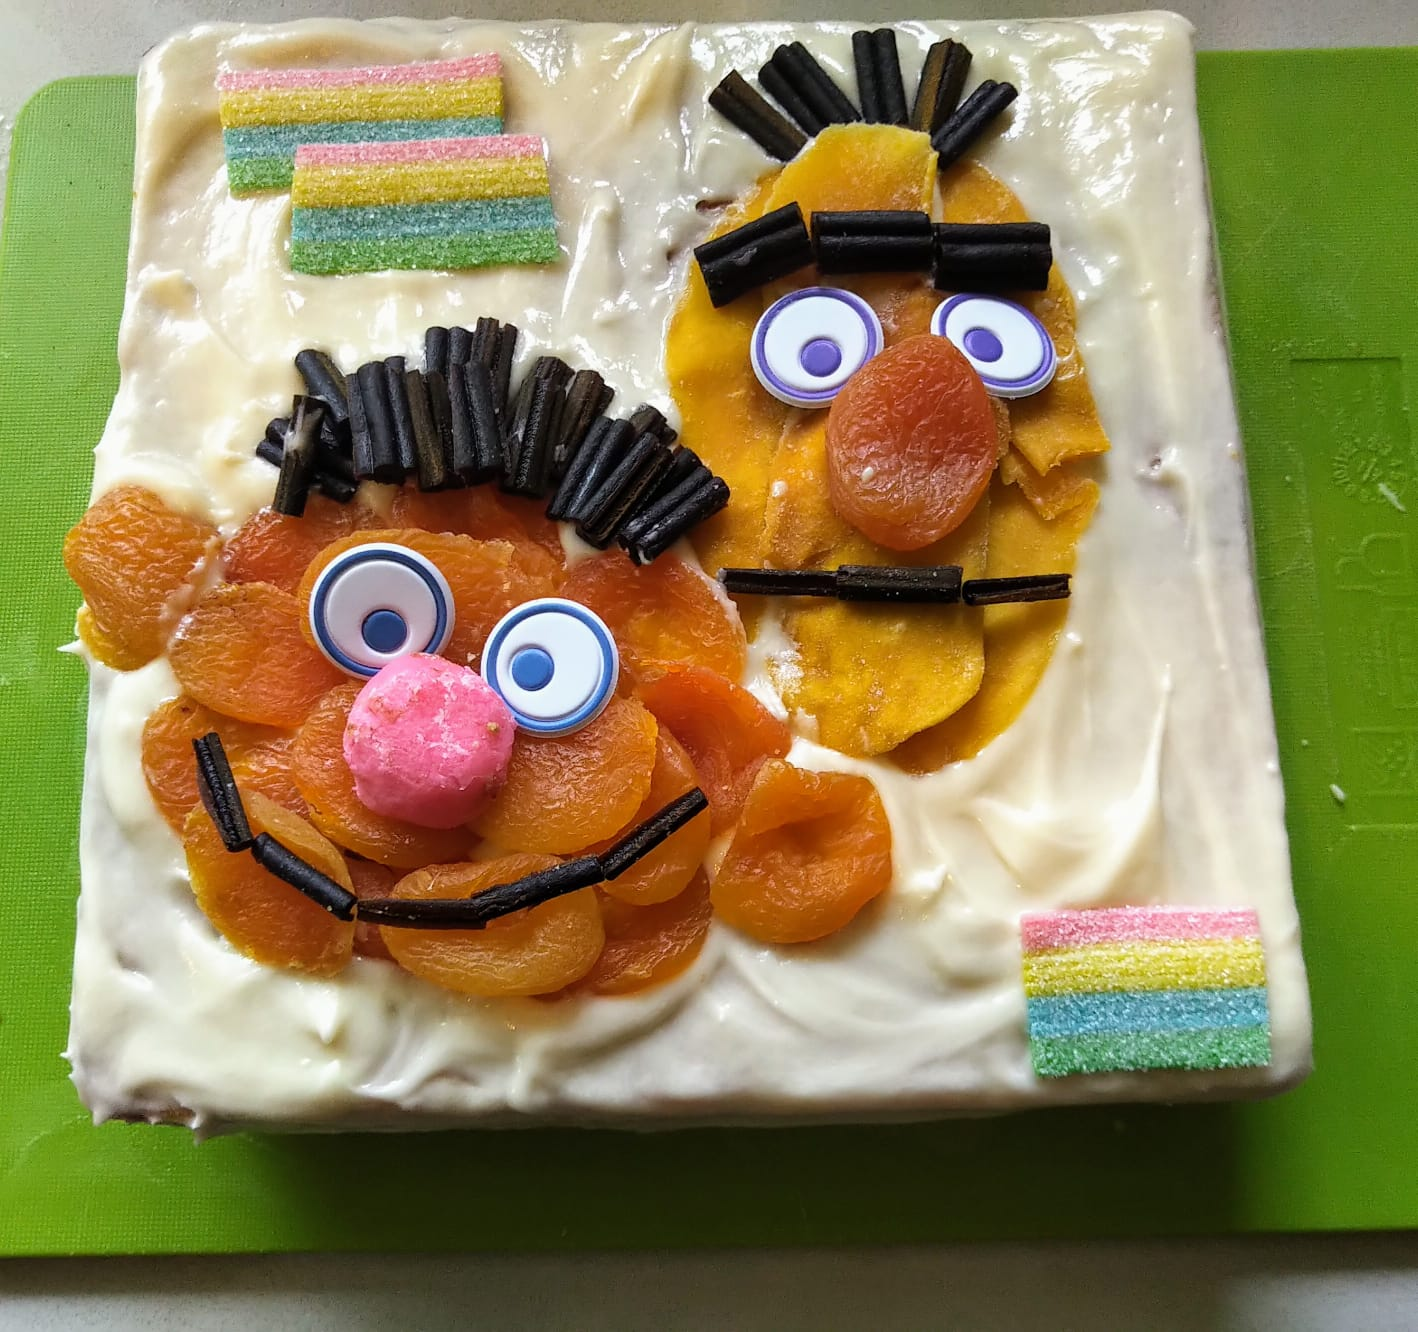 A square cake is shows with the faces of Sesame Street stars, Ernie and Bert, decorated in fruit and candy. The cake icing wis white and has candy rainbows in the corners.